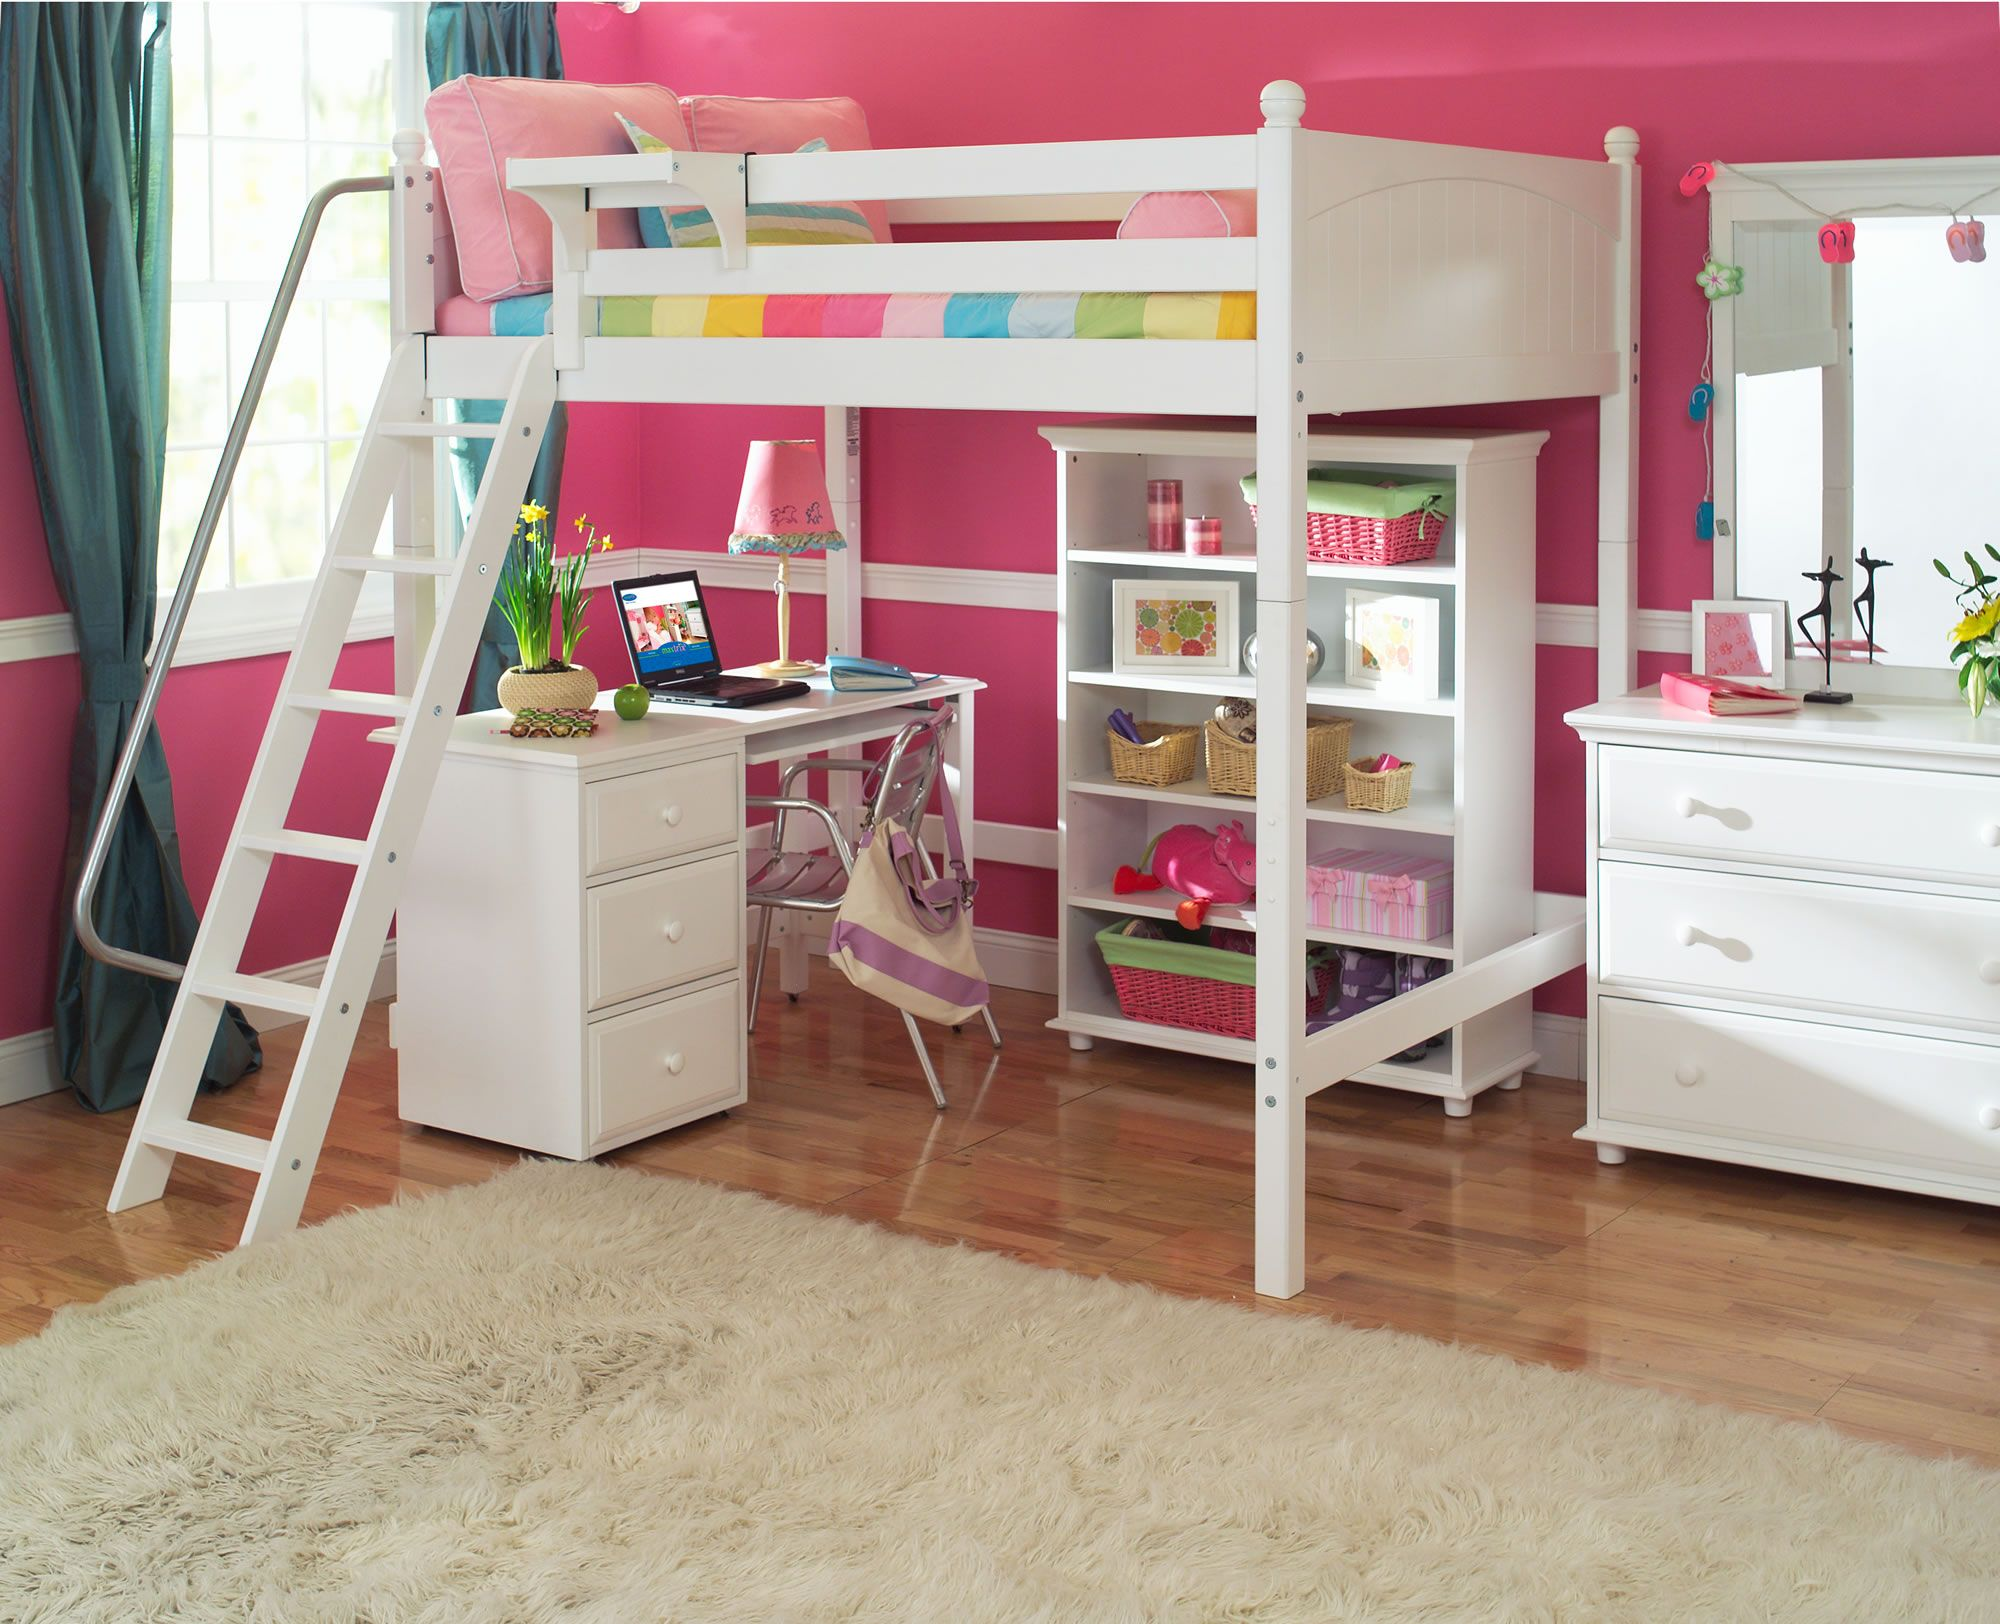 Bunk Bed With Desk Under It Luxury Living Room Set Check More At